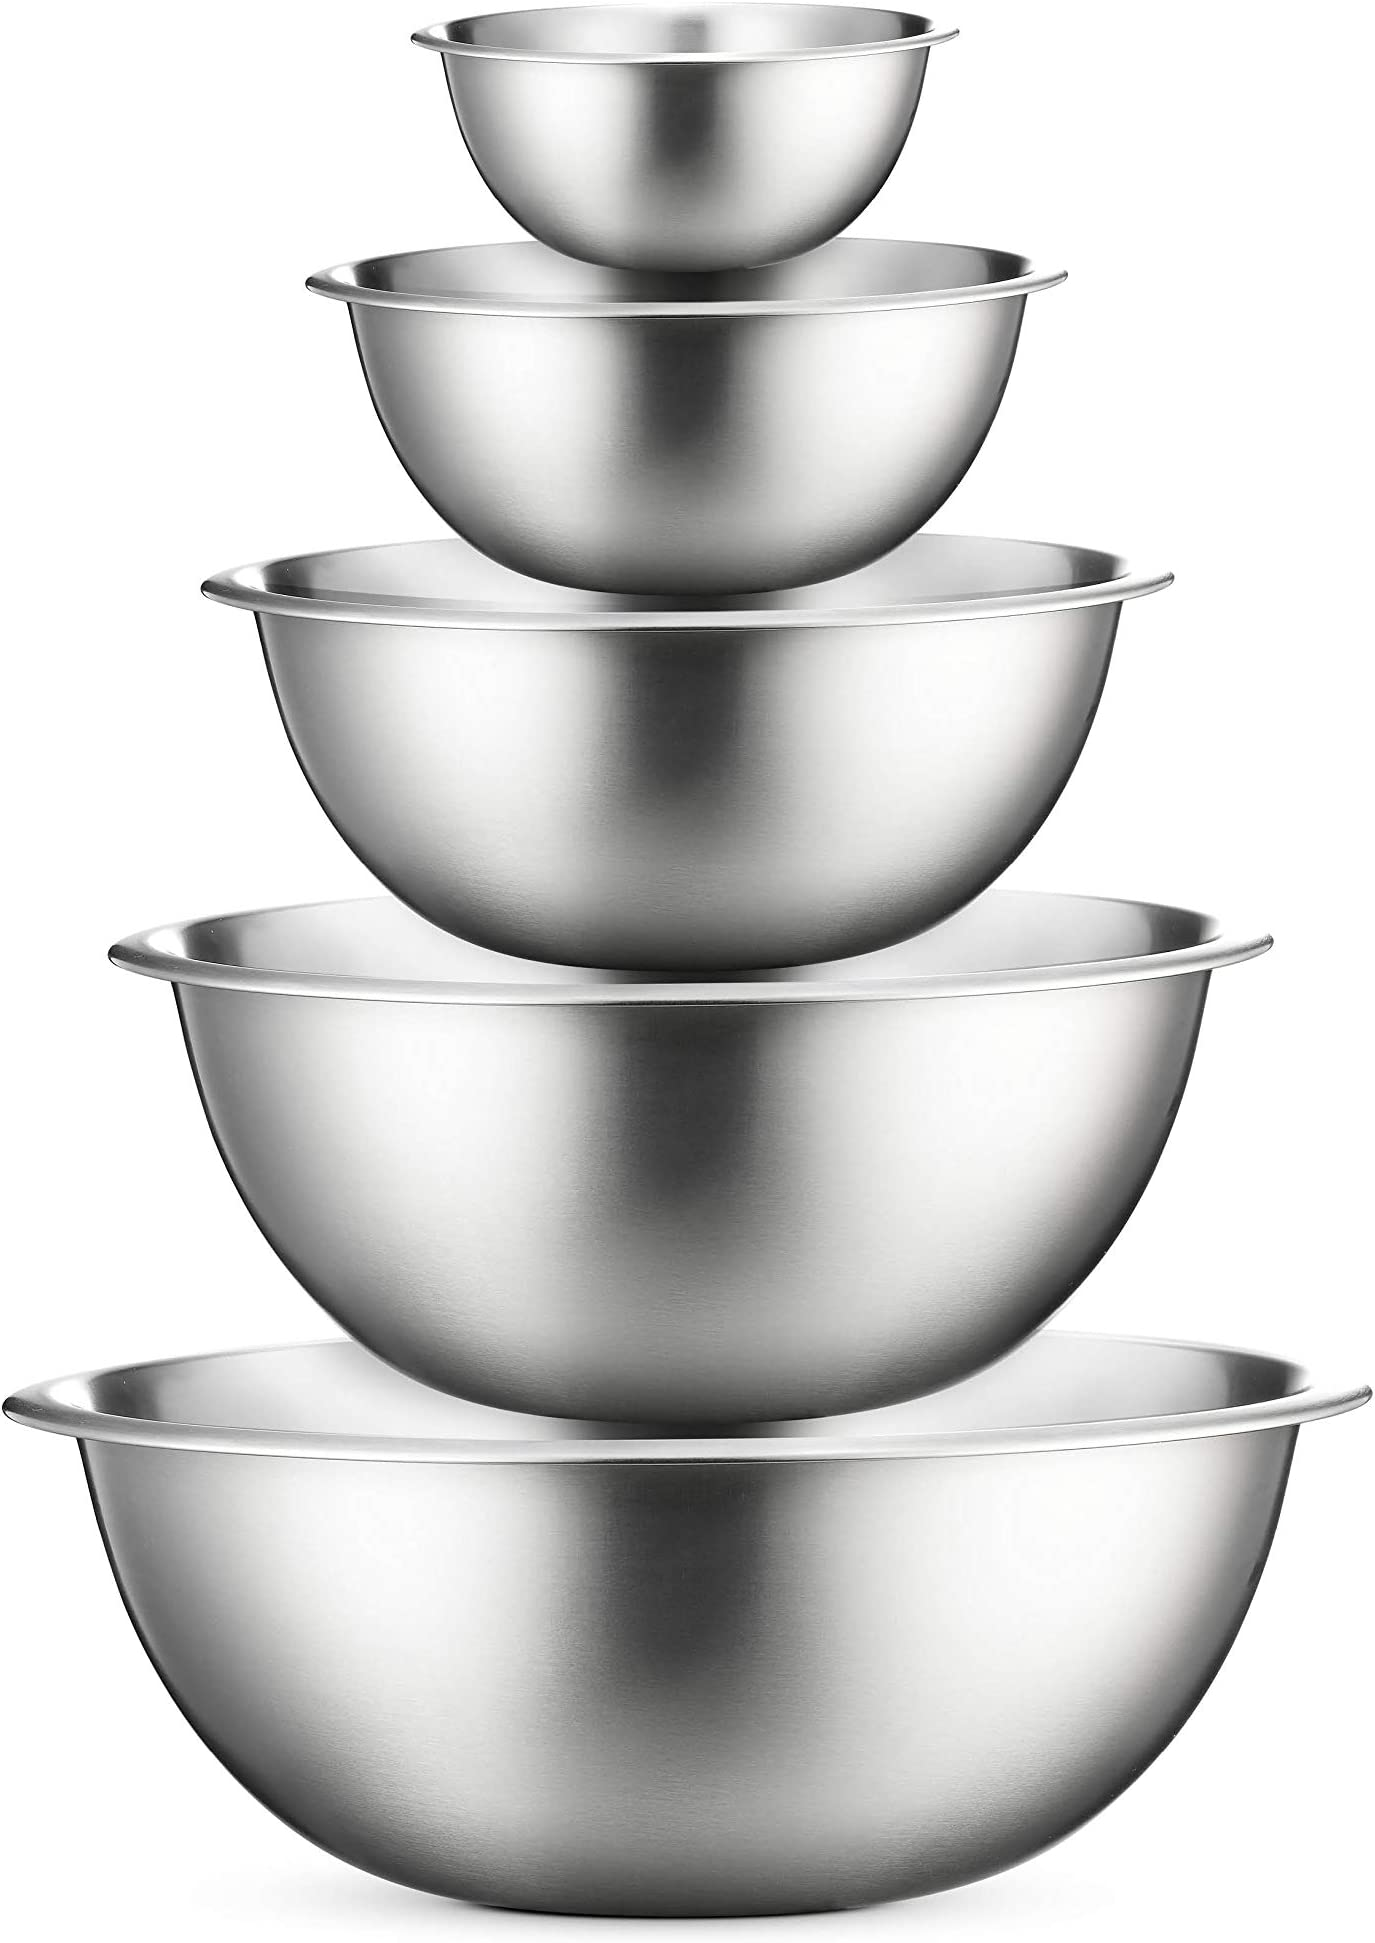 Stainless Steel Mixing Bowls (Set of 6) Stainless Steel Mixing Bowl Set - Easy To Clean, Nesting Bowls for Space Saving Storage, Great for Cooking, Baking, Prepping (5-Sizes)